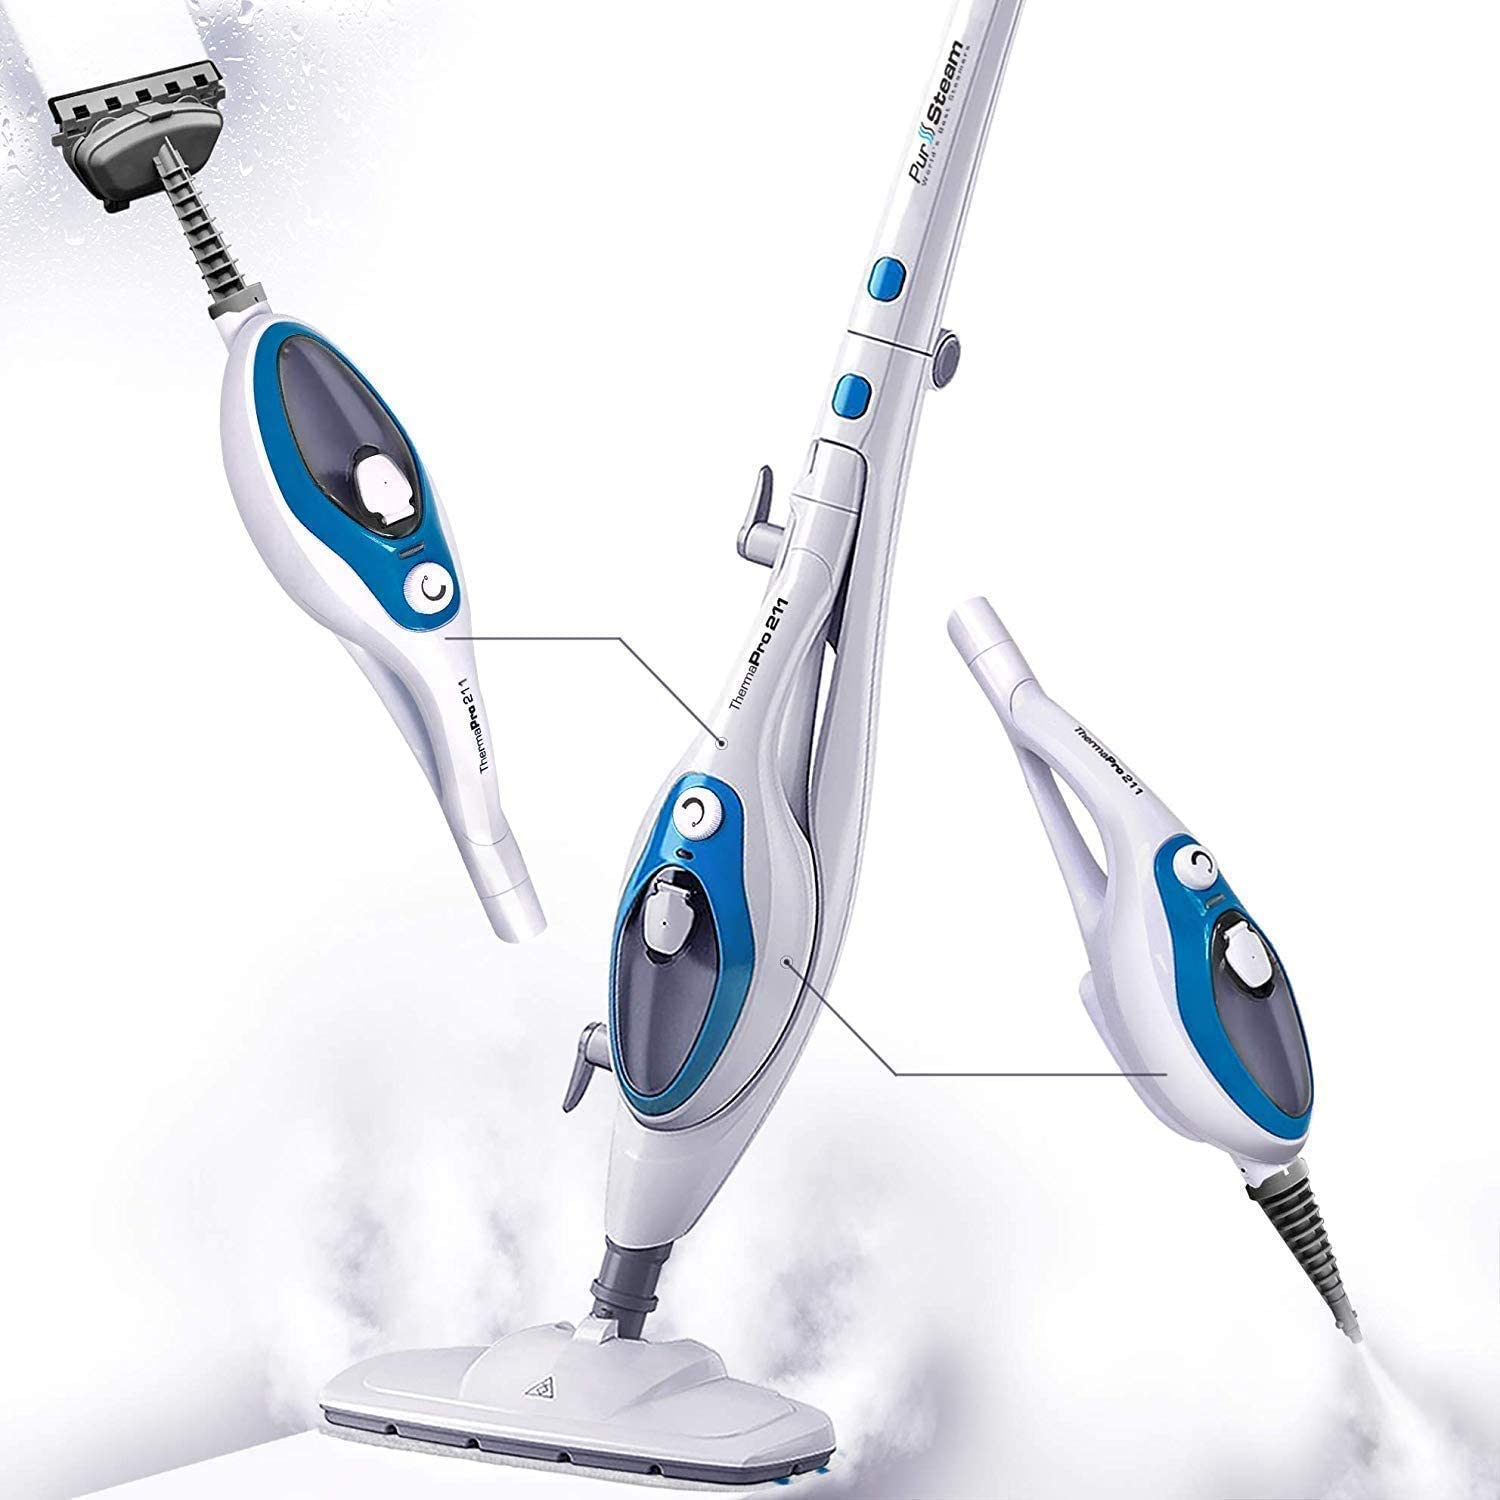 Steam Mop Cleaner ThermaPro 10-in-1 with Convenient Detachable Handheld Unit by PurSteam